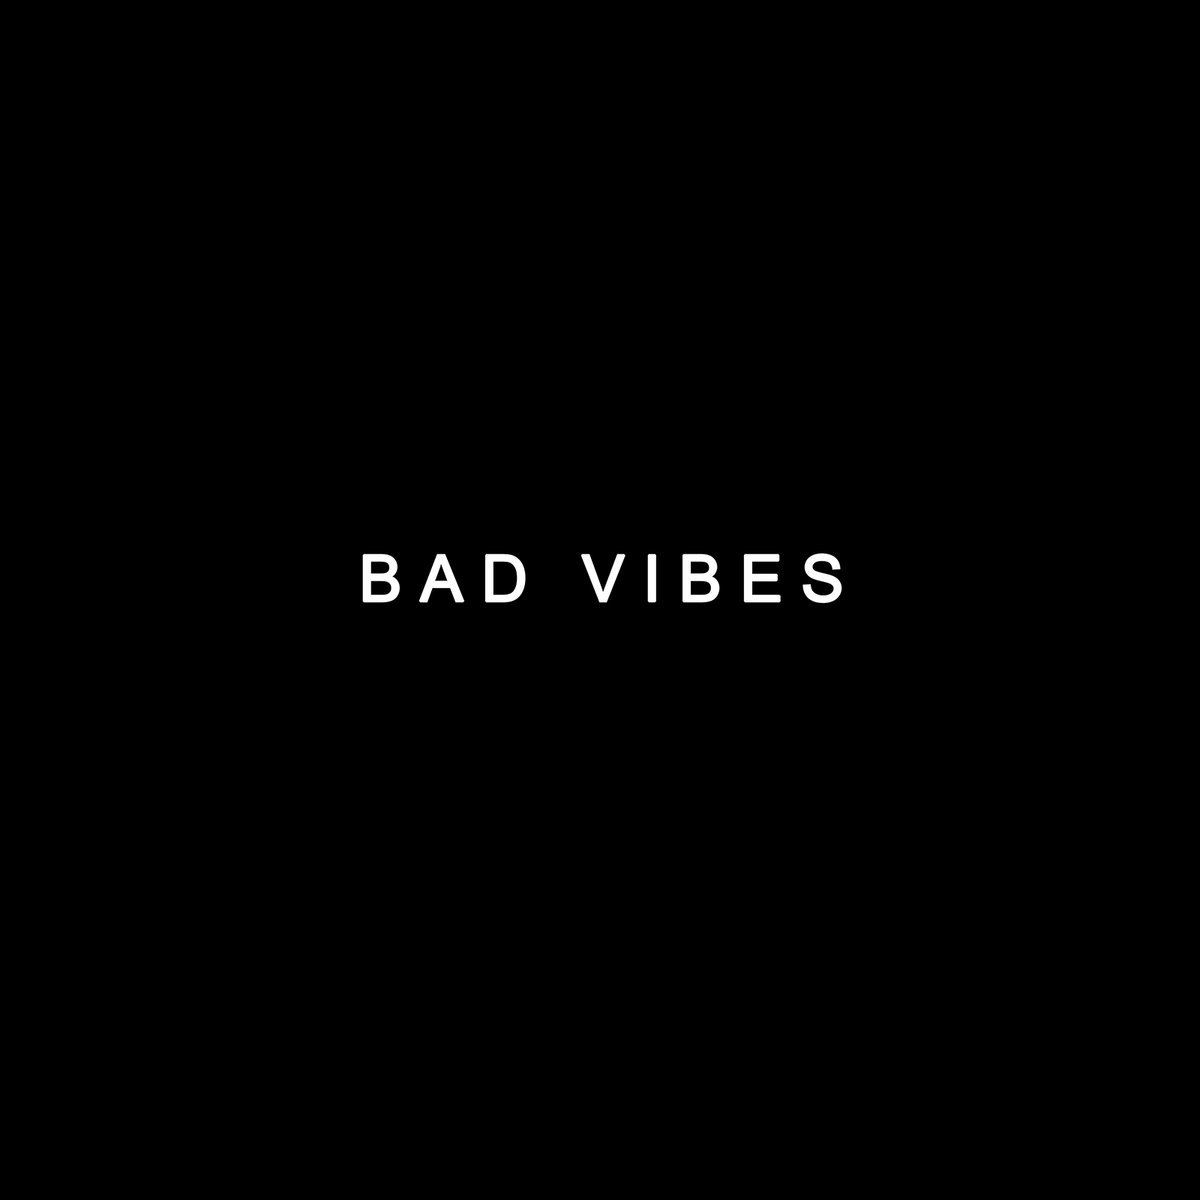 .@shlohmo - Bad Vibes - 5th Anniversary Edition Out November 11  https://t.co/R2Rg4uSiY1 https://t.co/2CiU1s7Sge